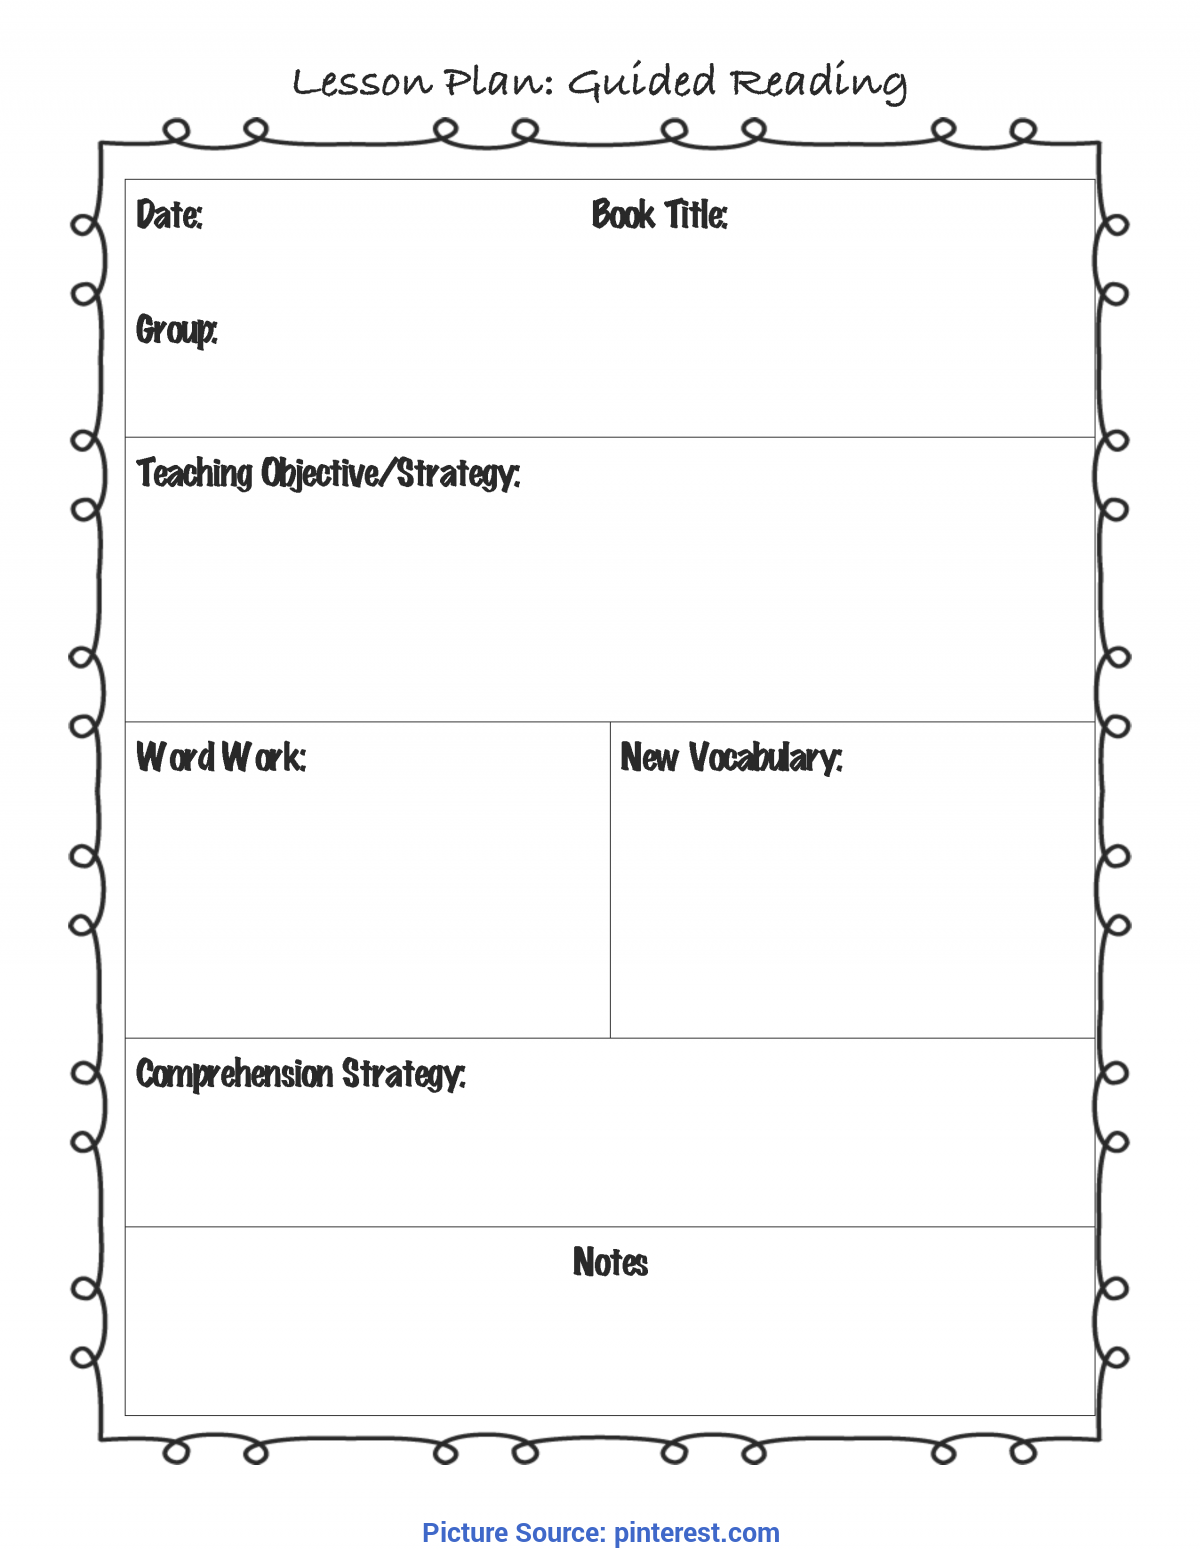 Trending Guided Reading Lessons 2Nd Grade Guided Reading Lesson Plan Template | For The Classroo